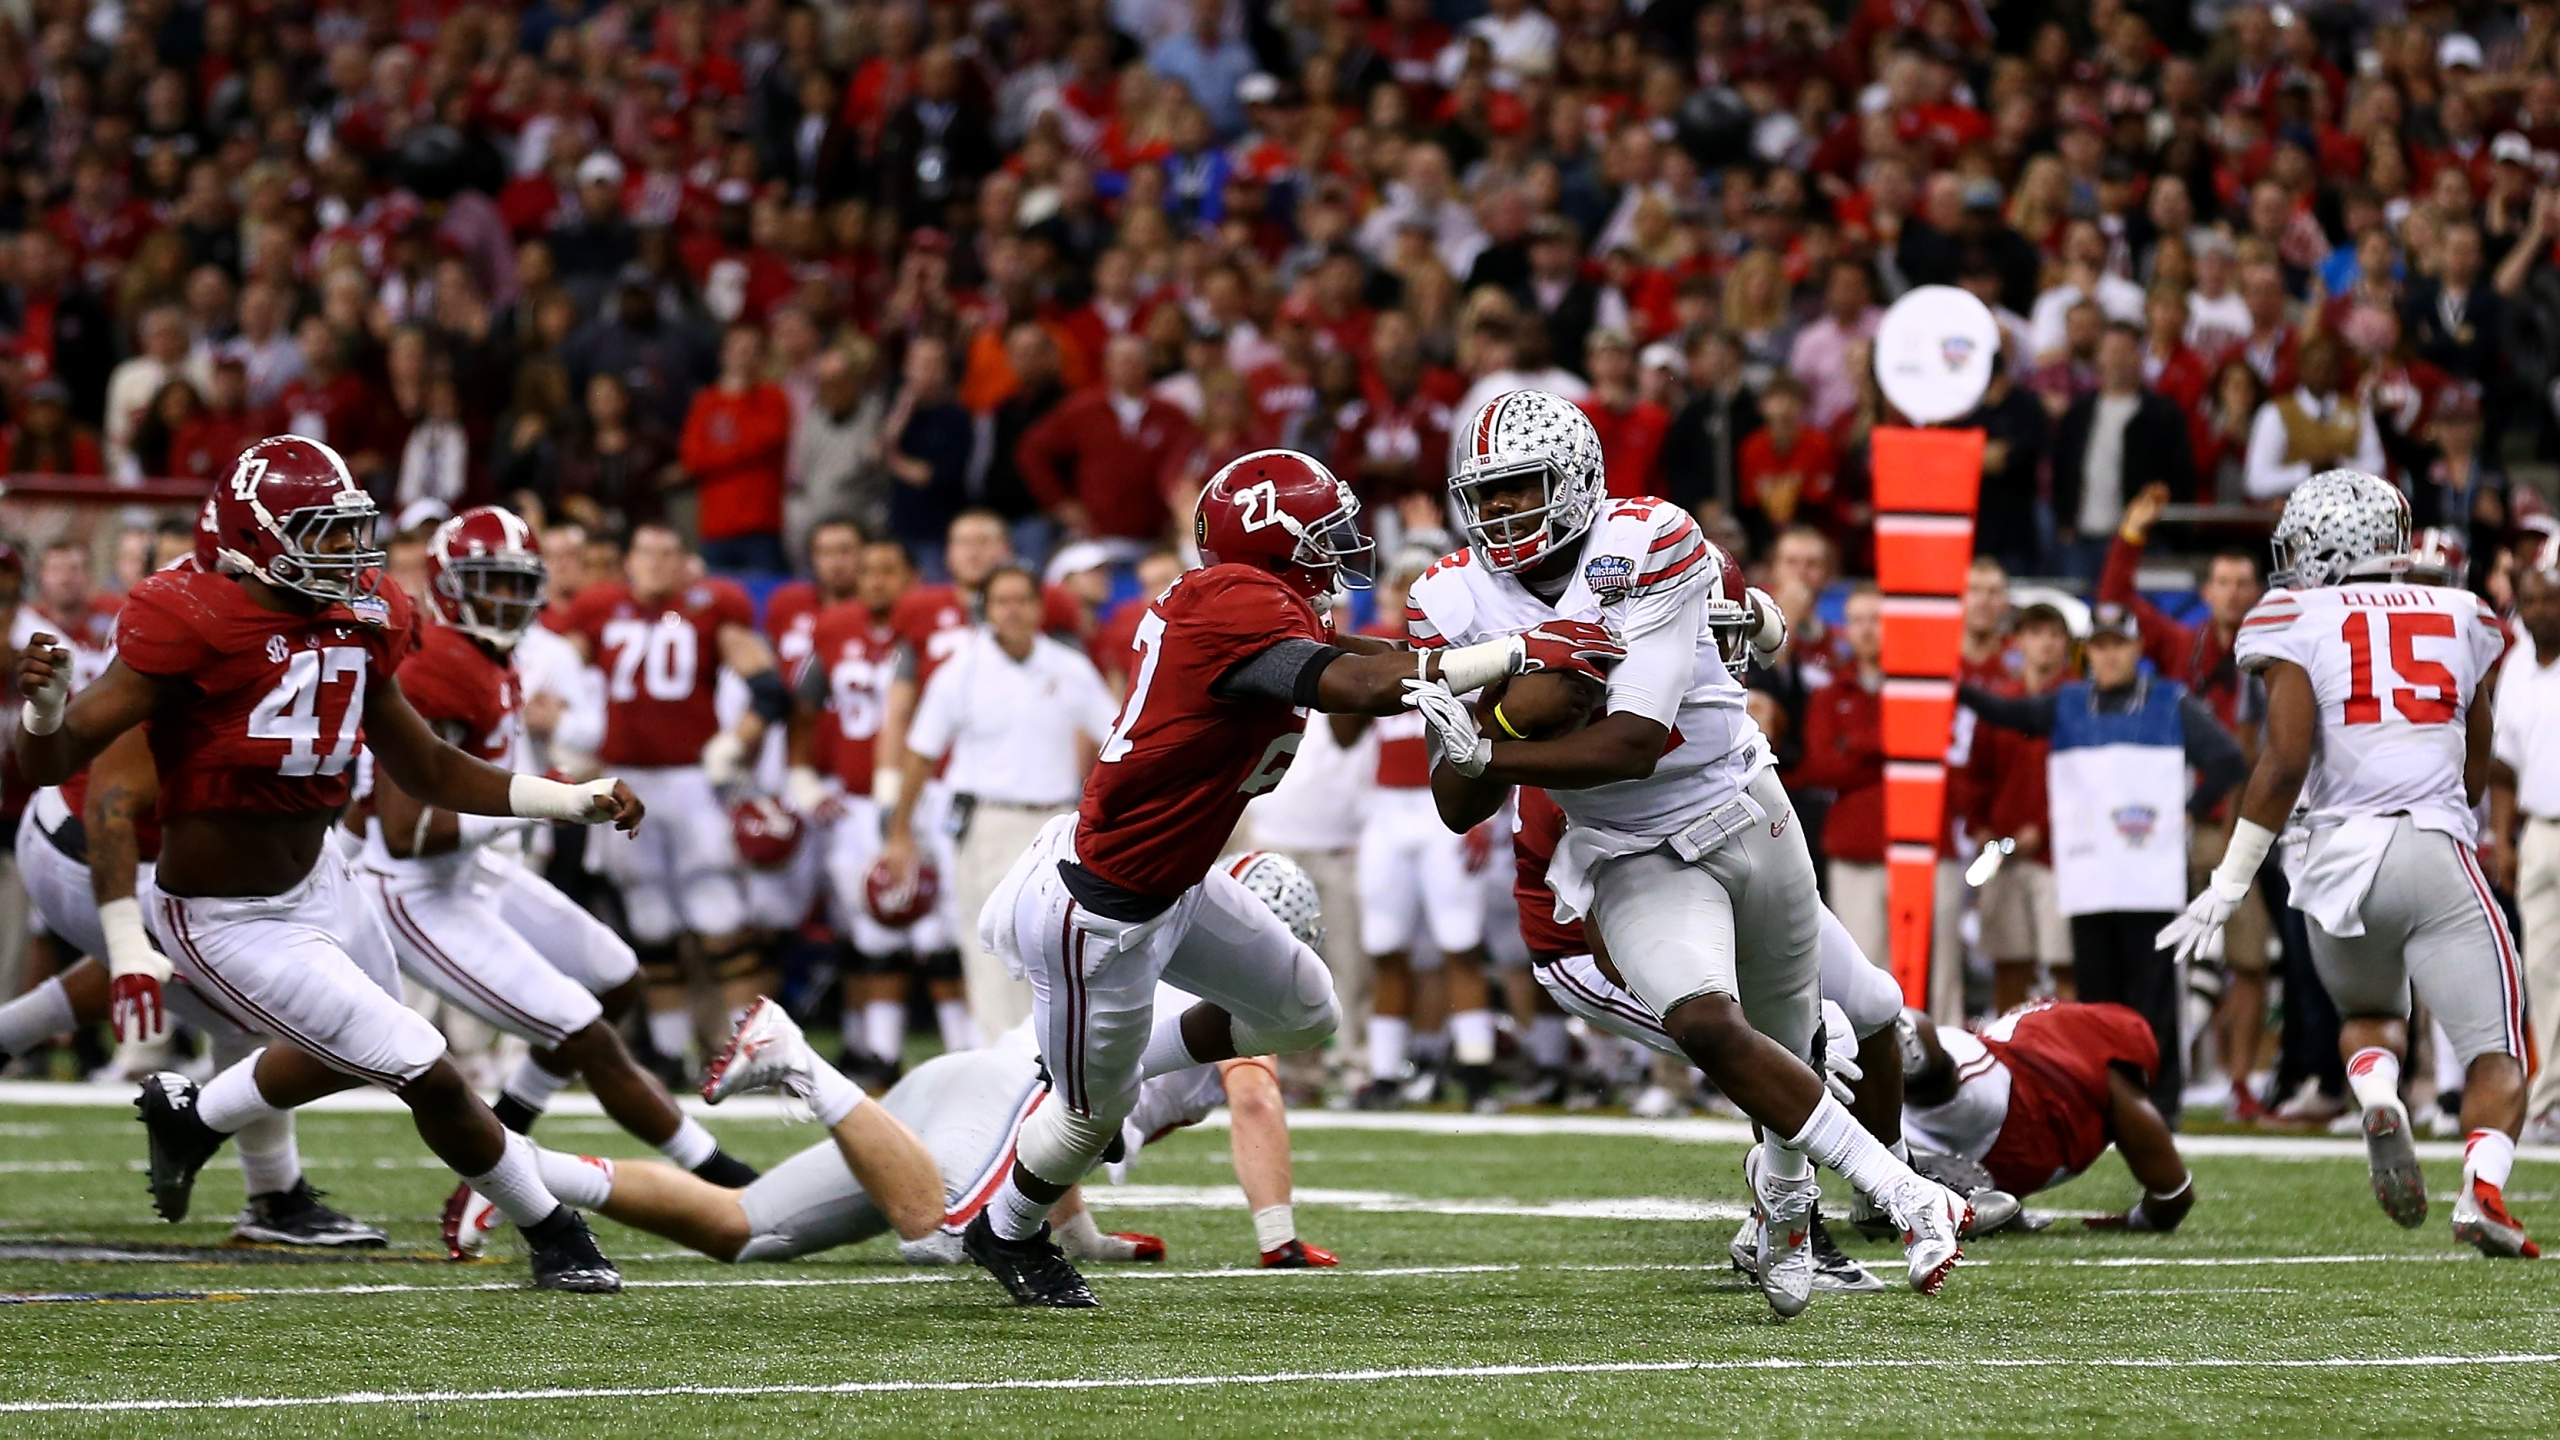 Ohio State Alabama To Face Off In Home And Home Series In 2027 28